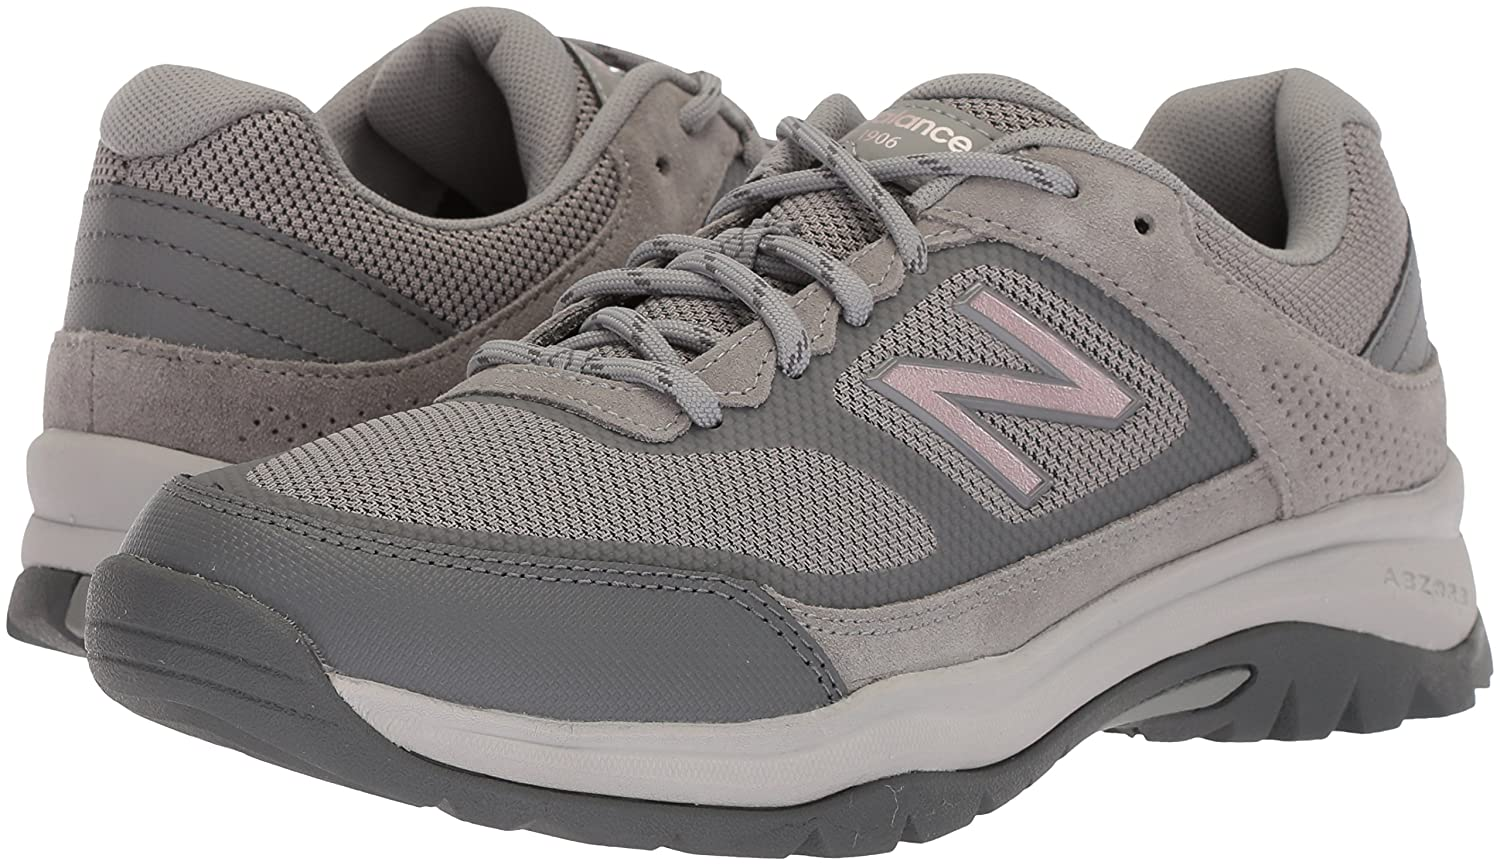 New Shoe Balance Women's 669v1 Walking Shoe New B0751S7LRD 7 B(M) US|Grey/Rose Gold f7bfe3